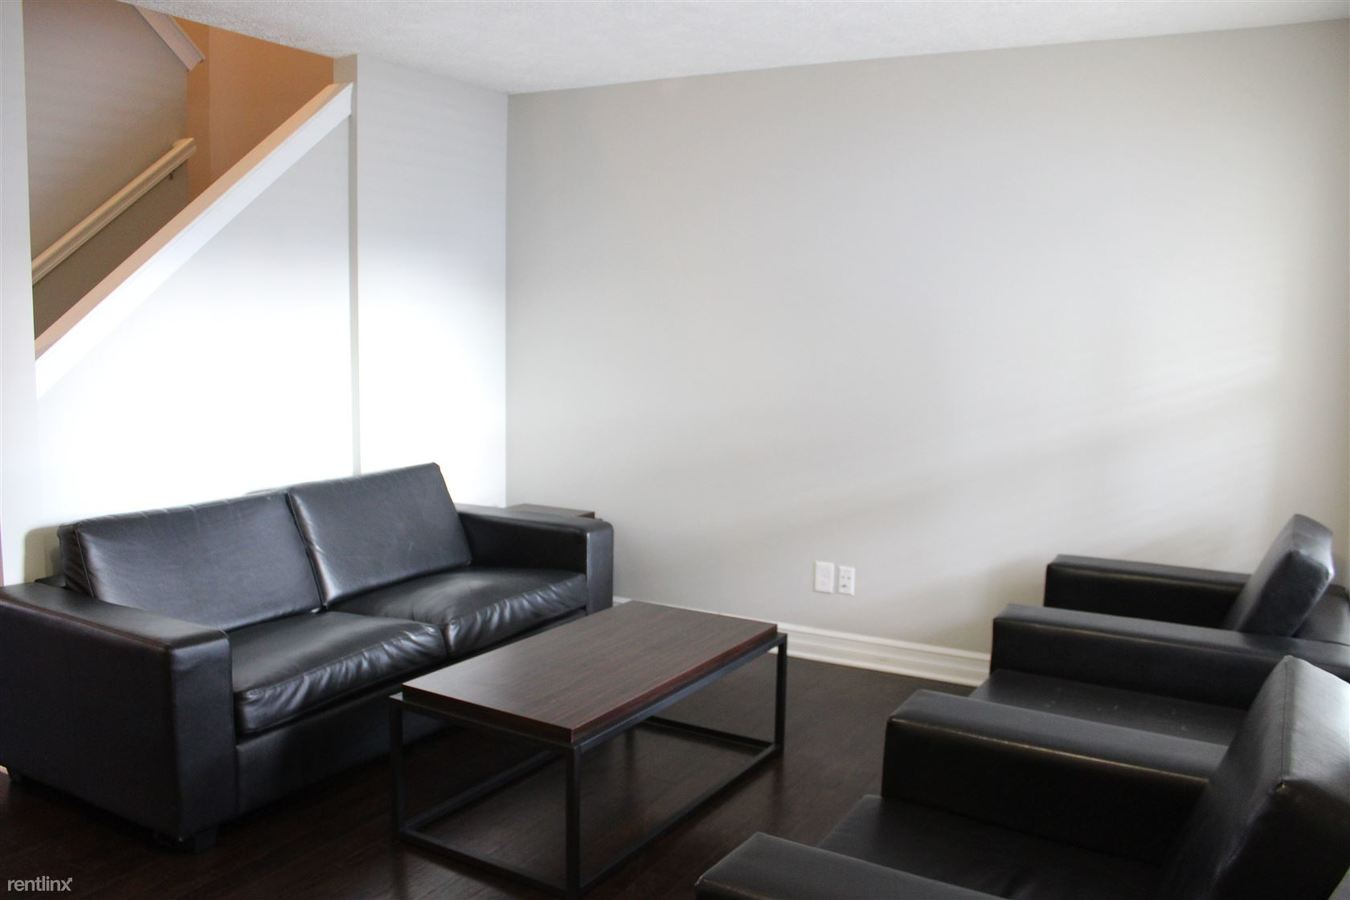 1 Bedroom 1 Bathroom Apartment for rent at The Cottages in East Lansing, MI